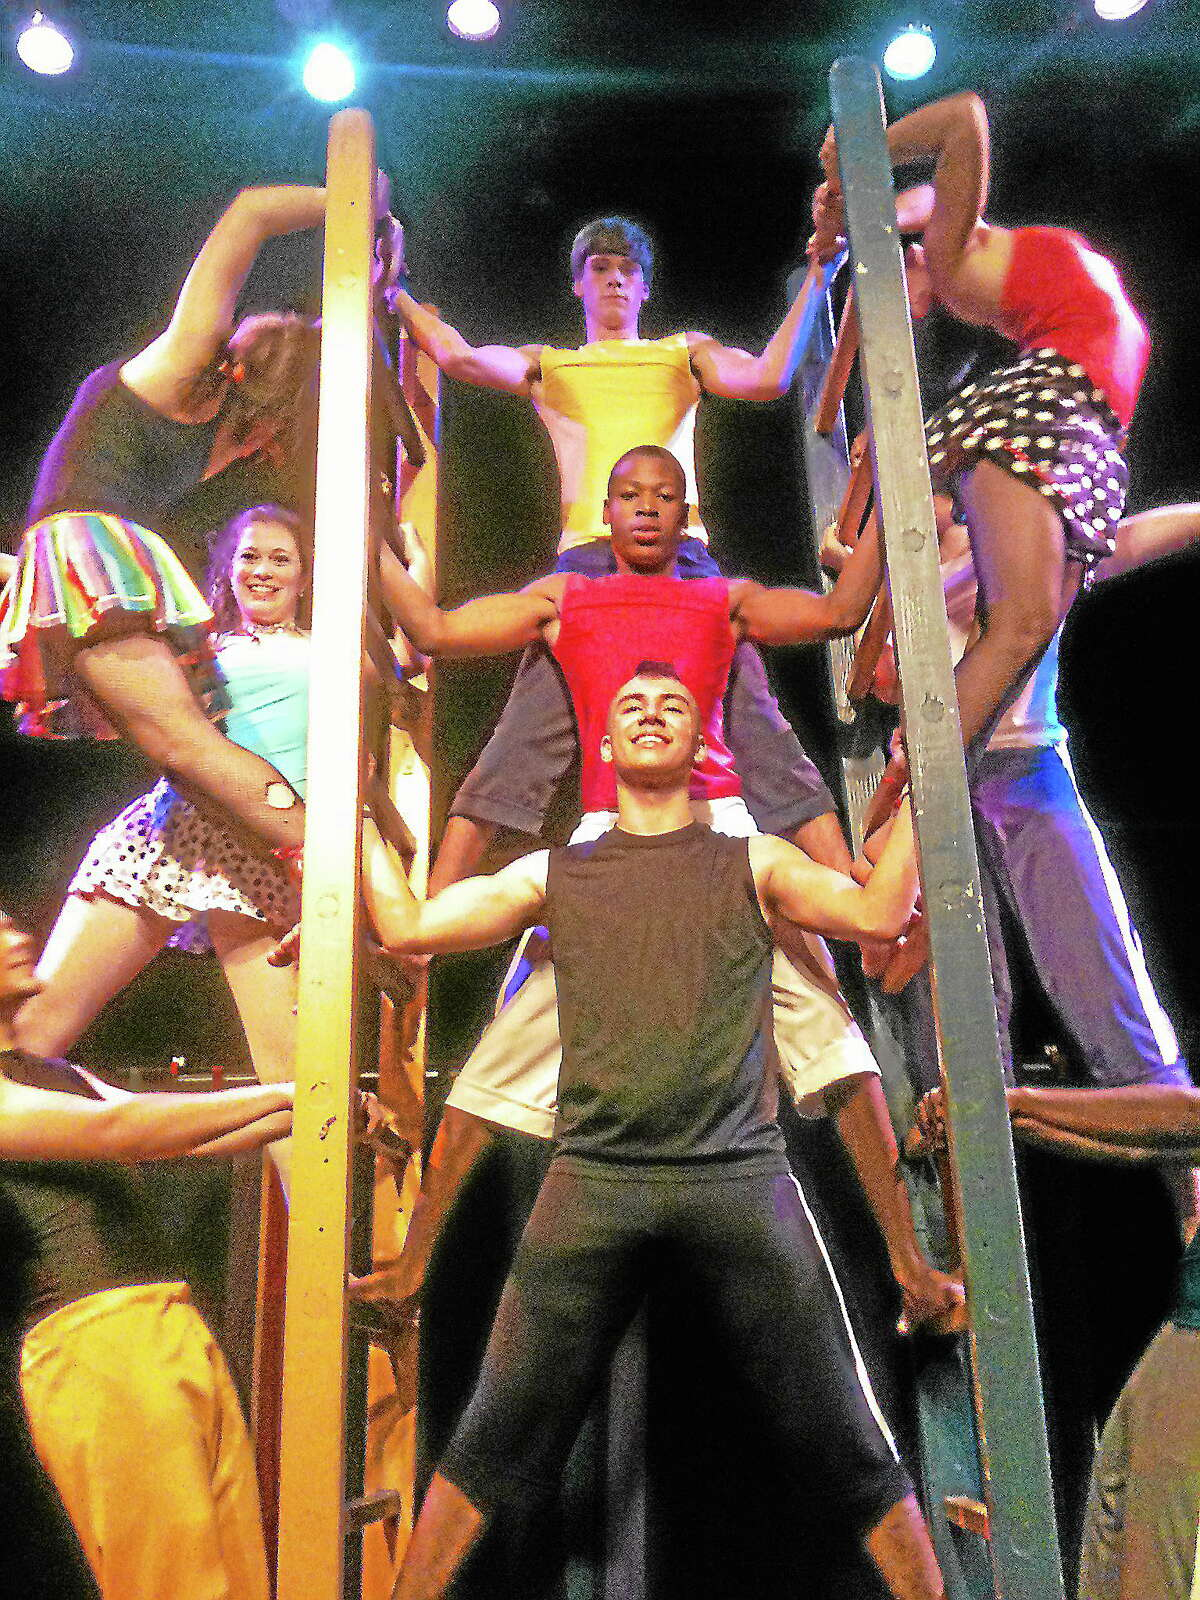 Oddfellows Playhouse and ARTFARM announce auditions for the 2013-14 cast of Circophony, a touring youth circus company co-sponsored by the two Middletown-based theater groups. Young people ages twelve to eighteen are invited to audition to join the cast of this year's show, Circus in Wonderland. Auditions will be held Tuesday, September 10, 6 - 8 pm at Oddfellows Playhouse at 128 Washington Street in Middletown.